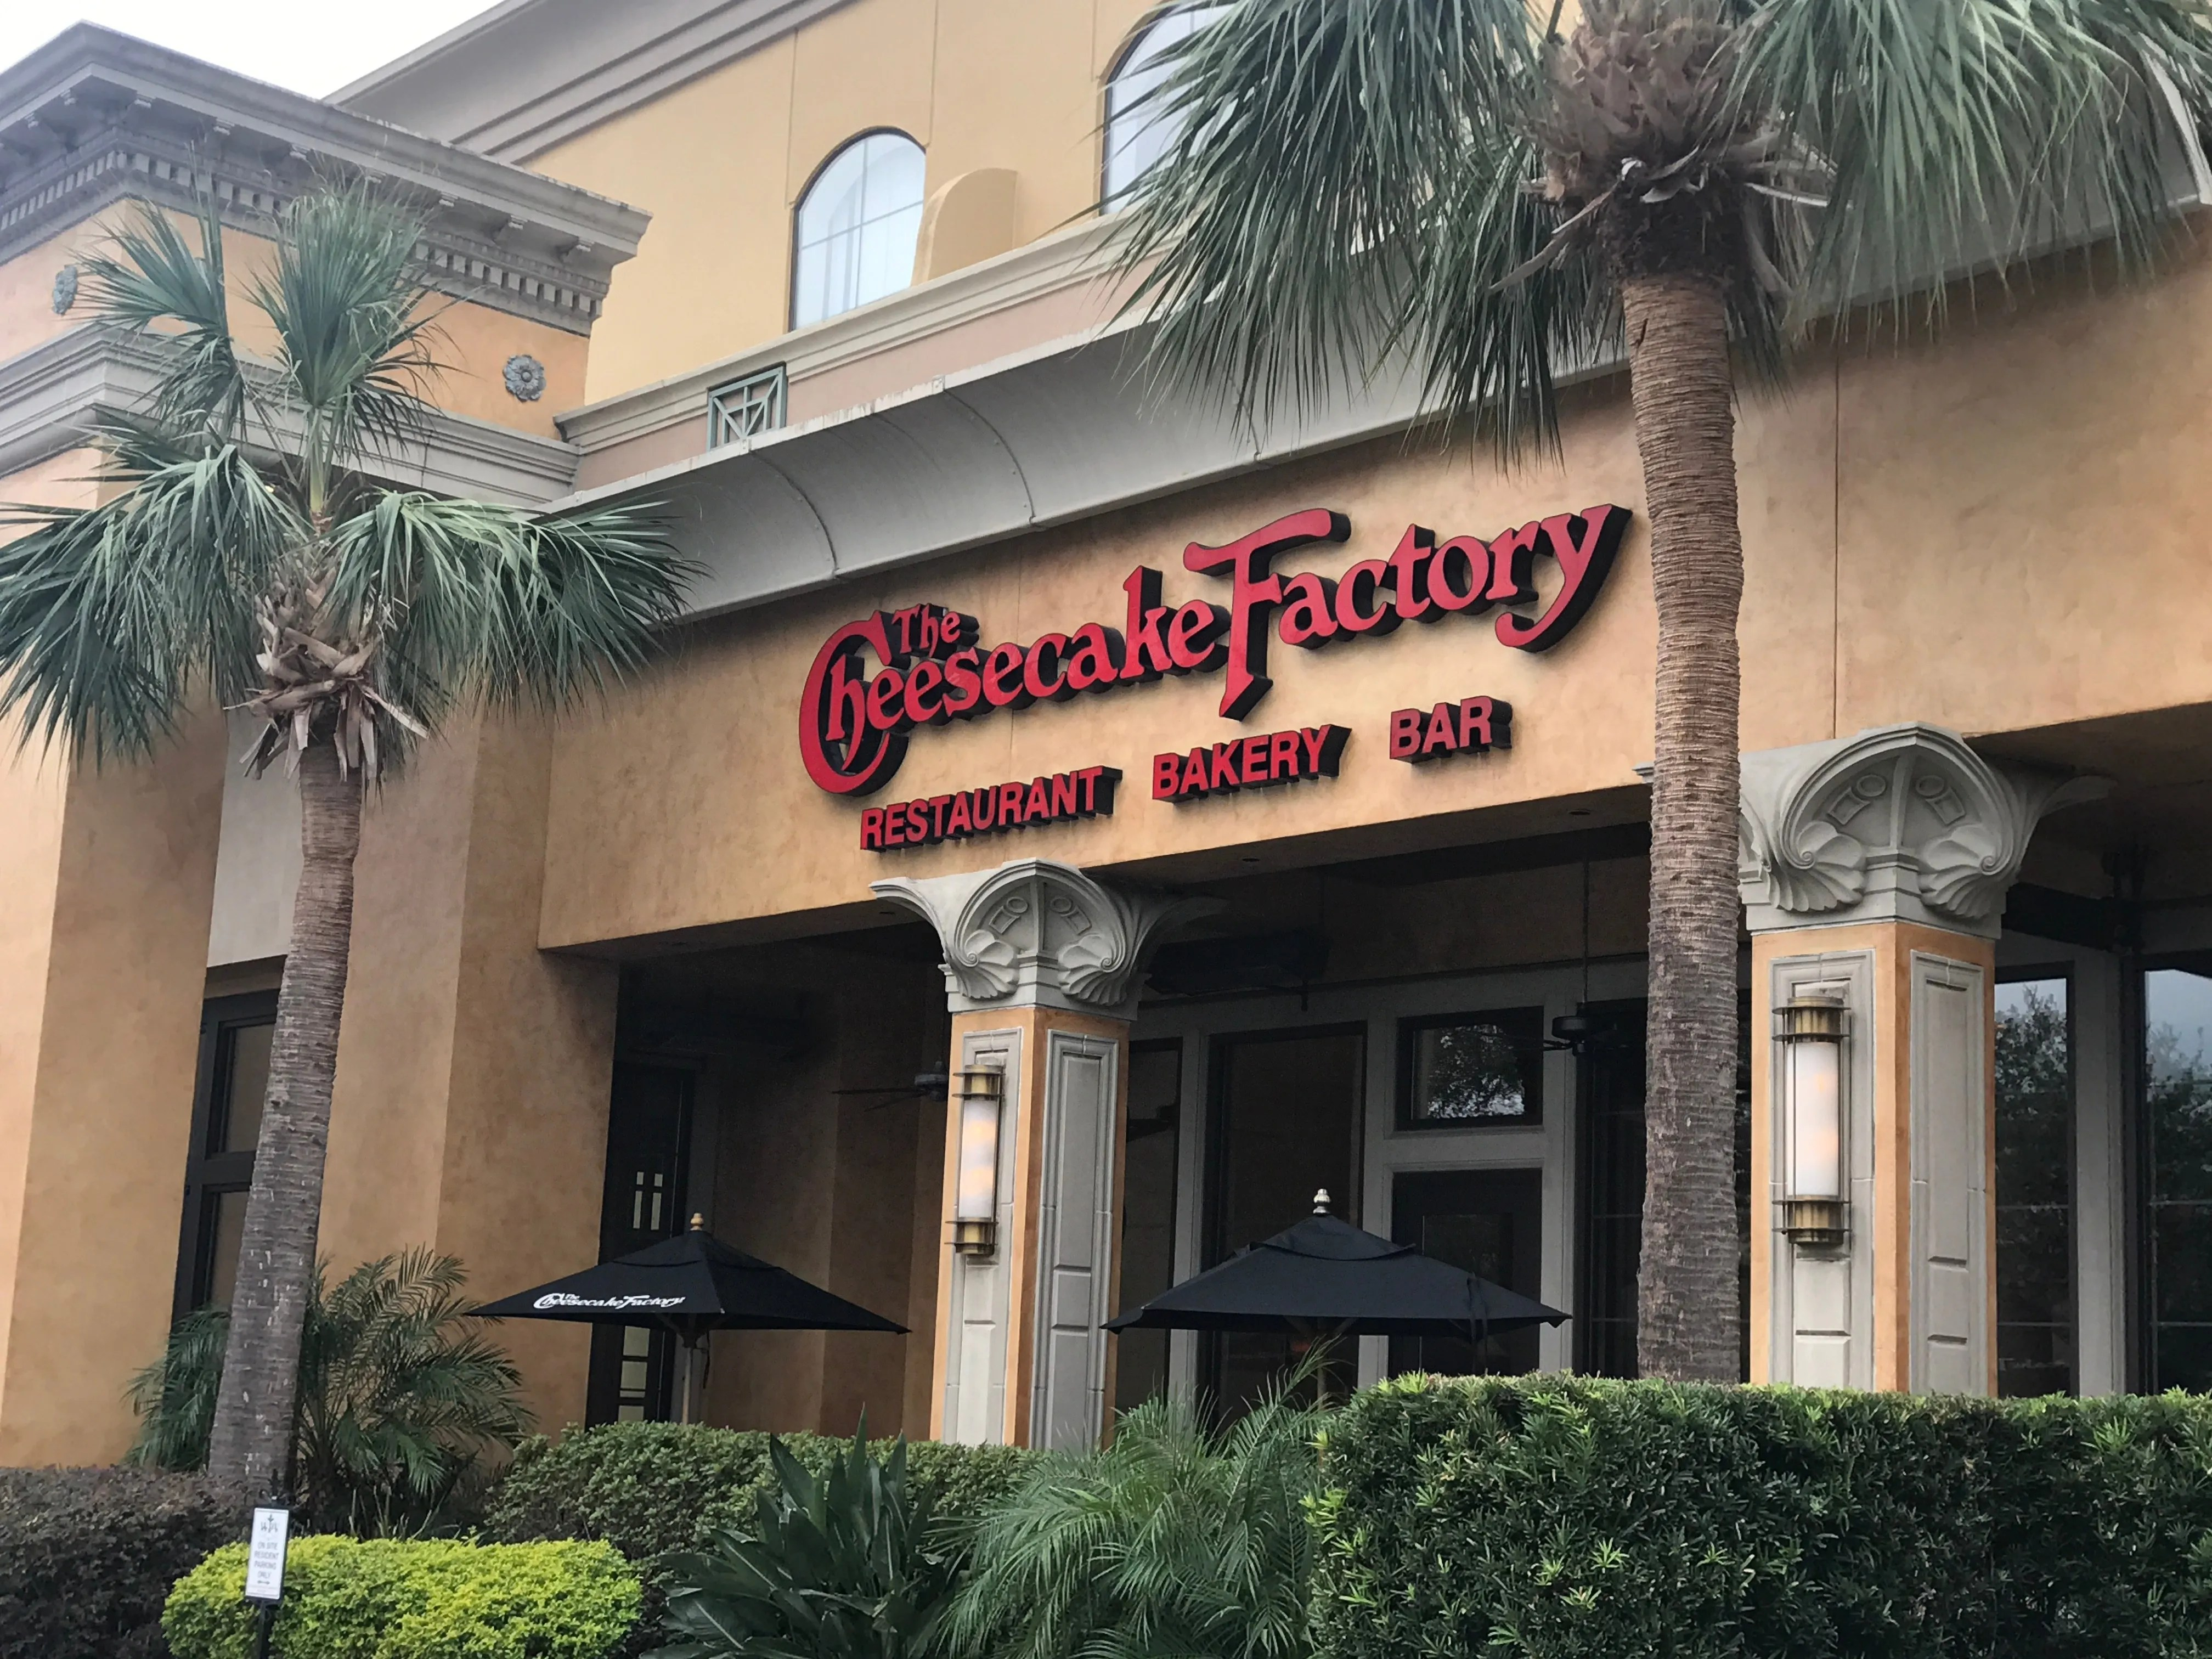 The Cheesecake Factory is one of the top 10 large U.S. restaurant chains, according to TripAdvisor.